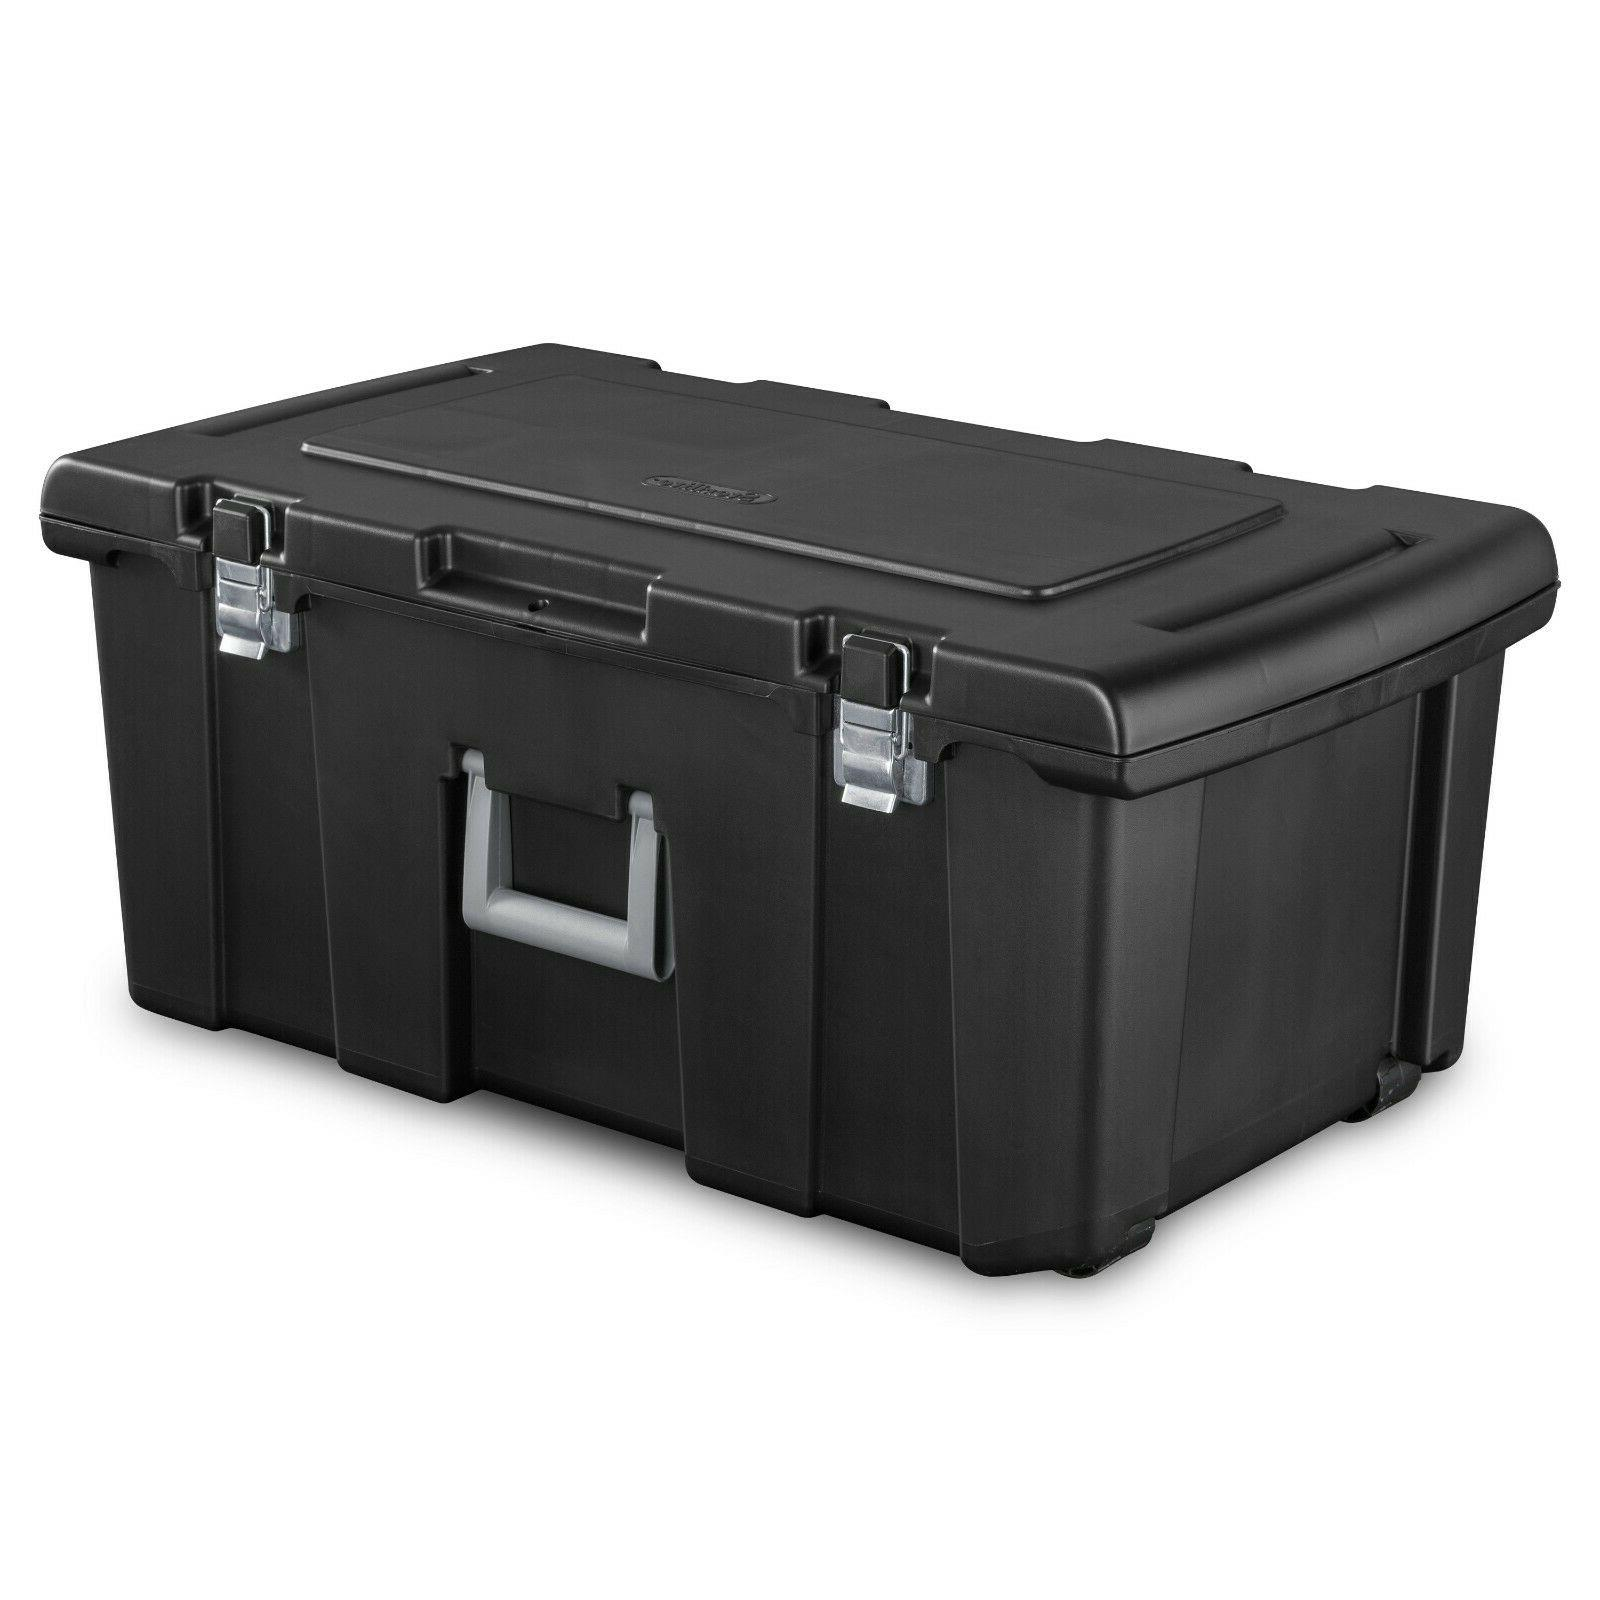 Large Plastic Storage Box Wheeled Container Gear Tote Portab